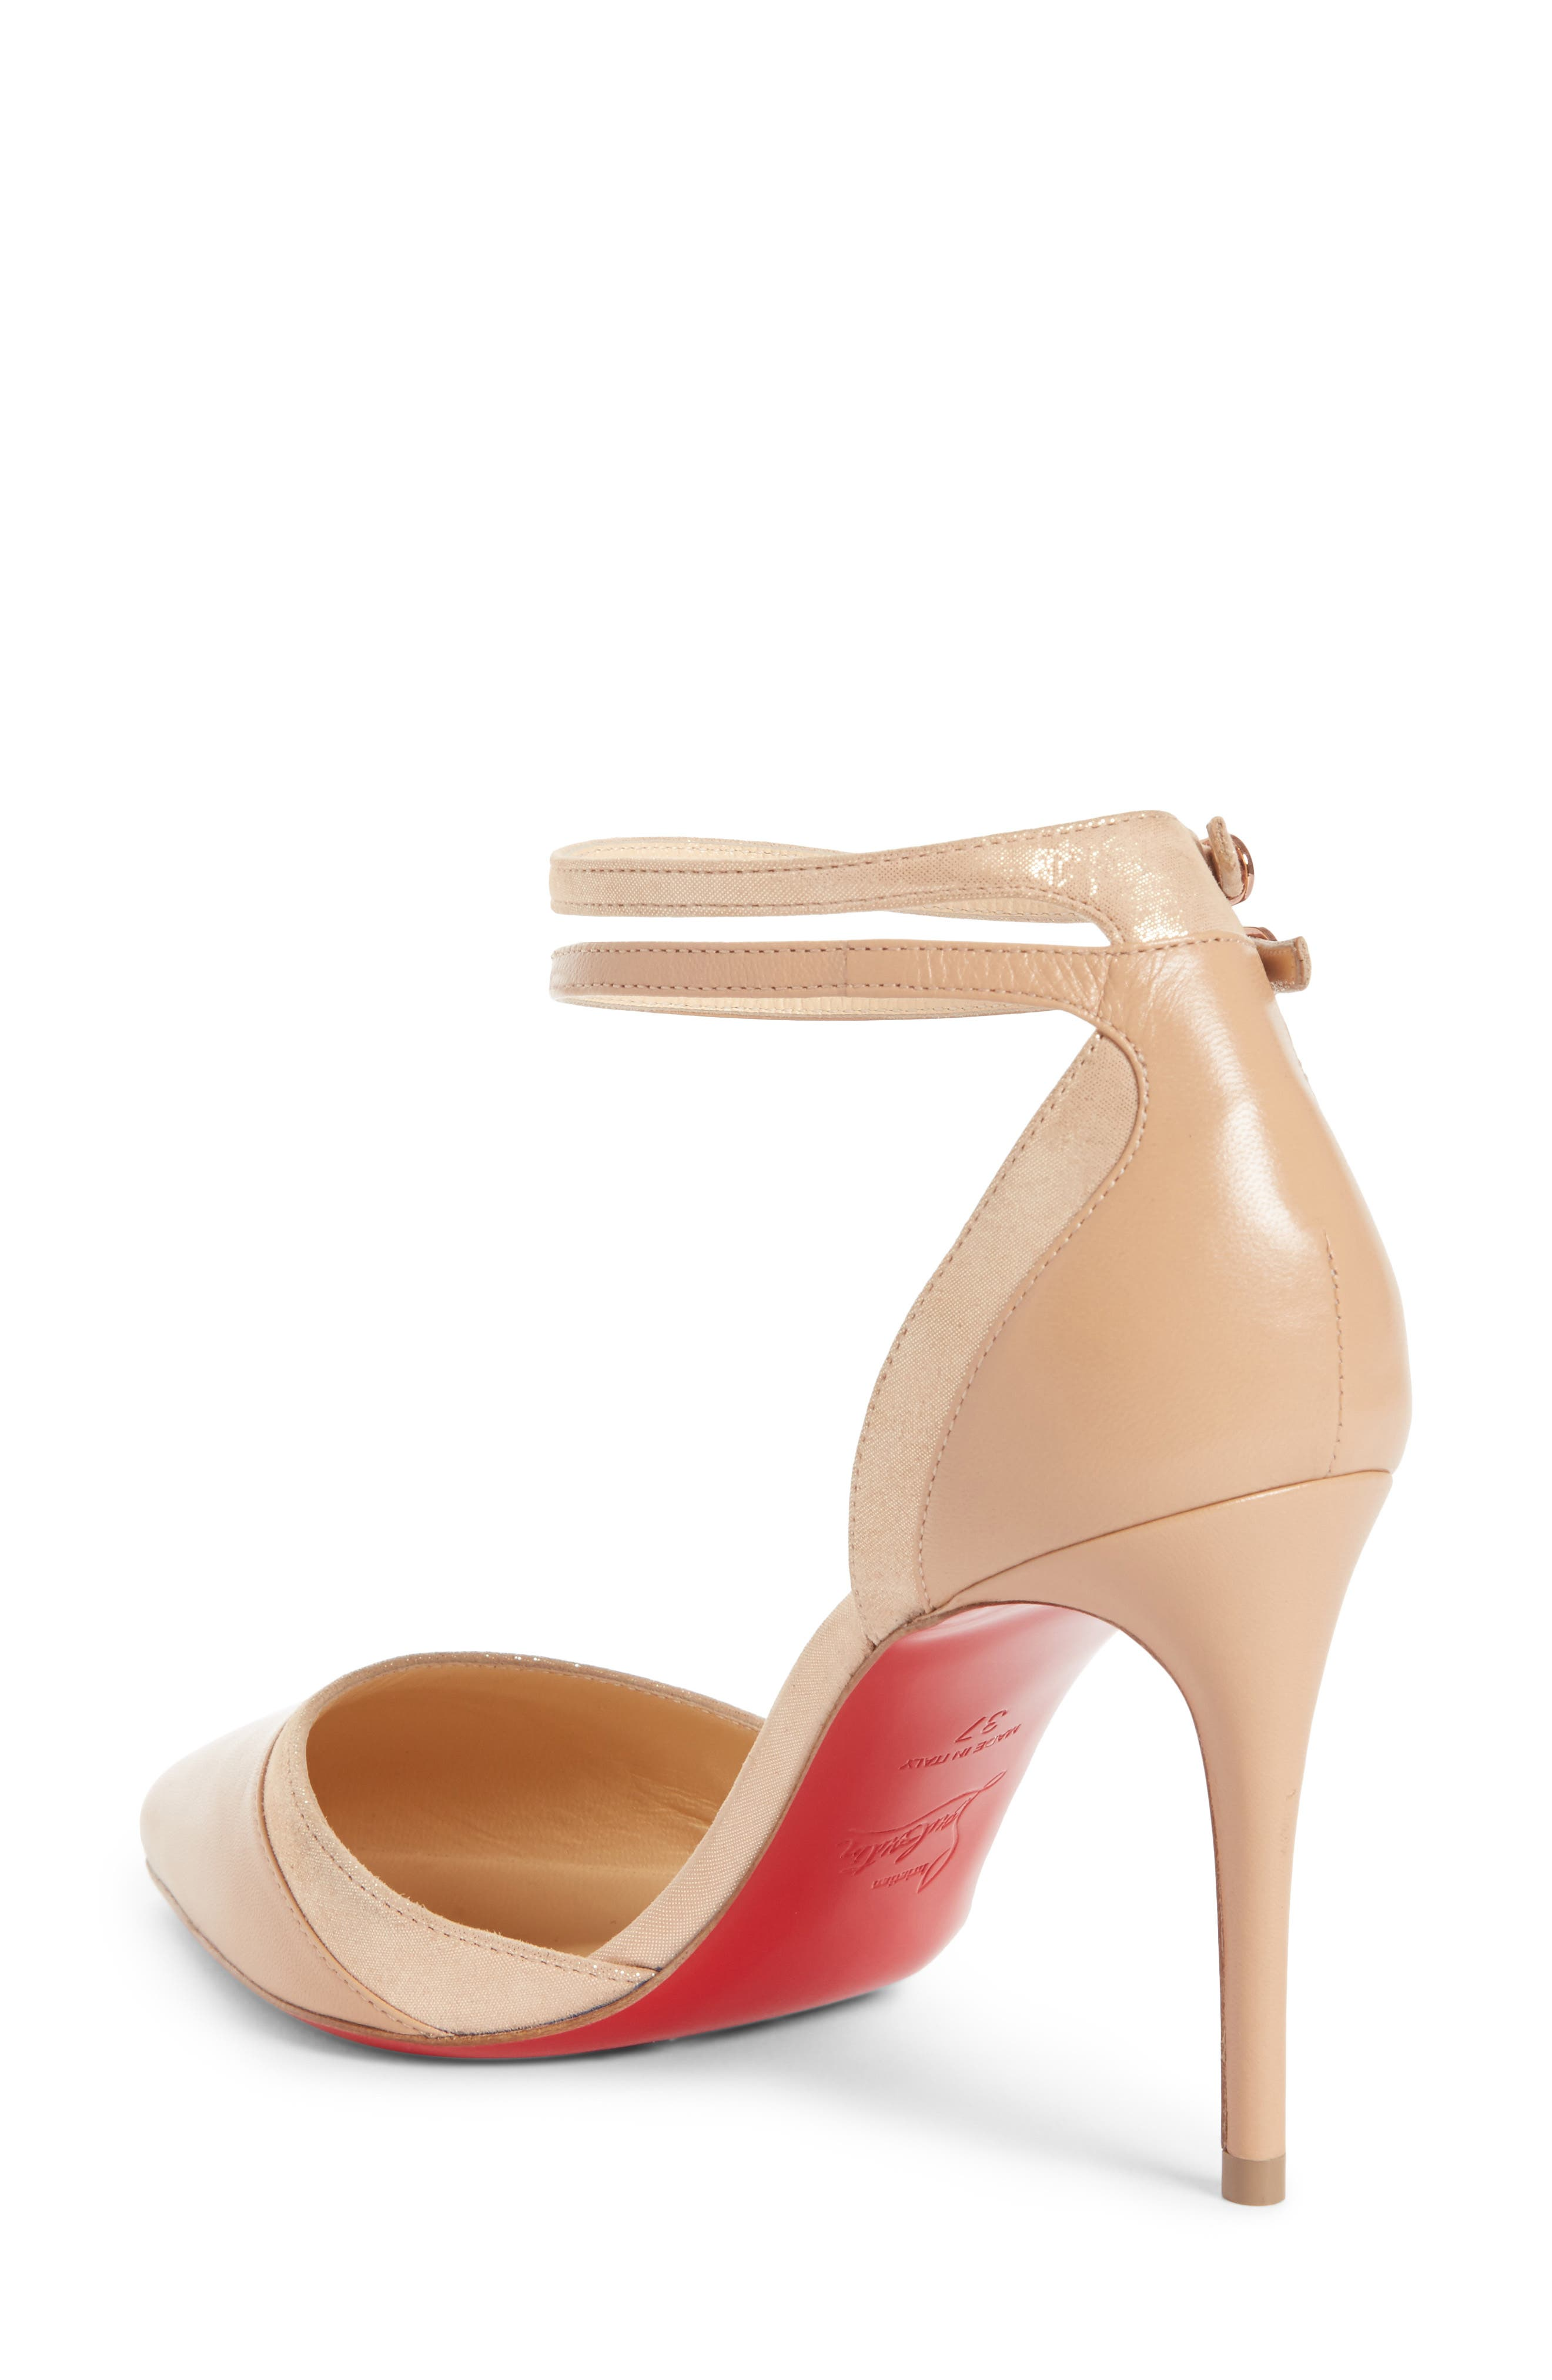 Uptown Ankle Strap Pump,                             Alternate thumbnail 2, color,                             Nude